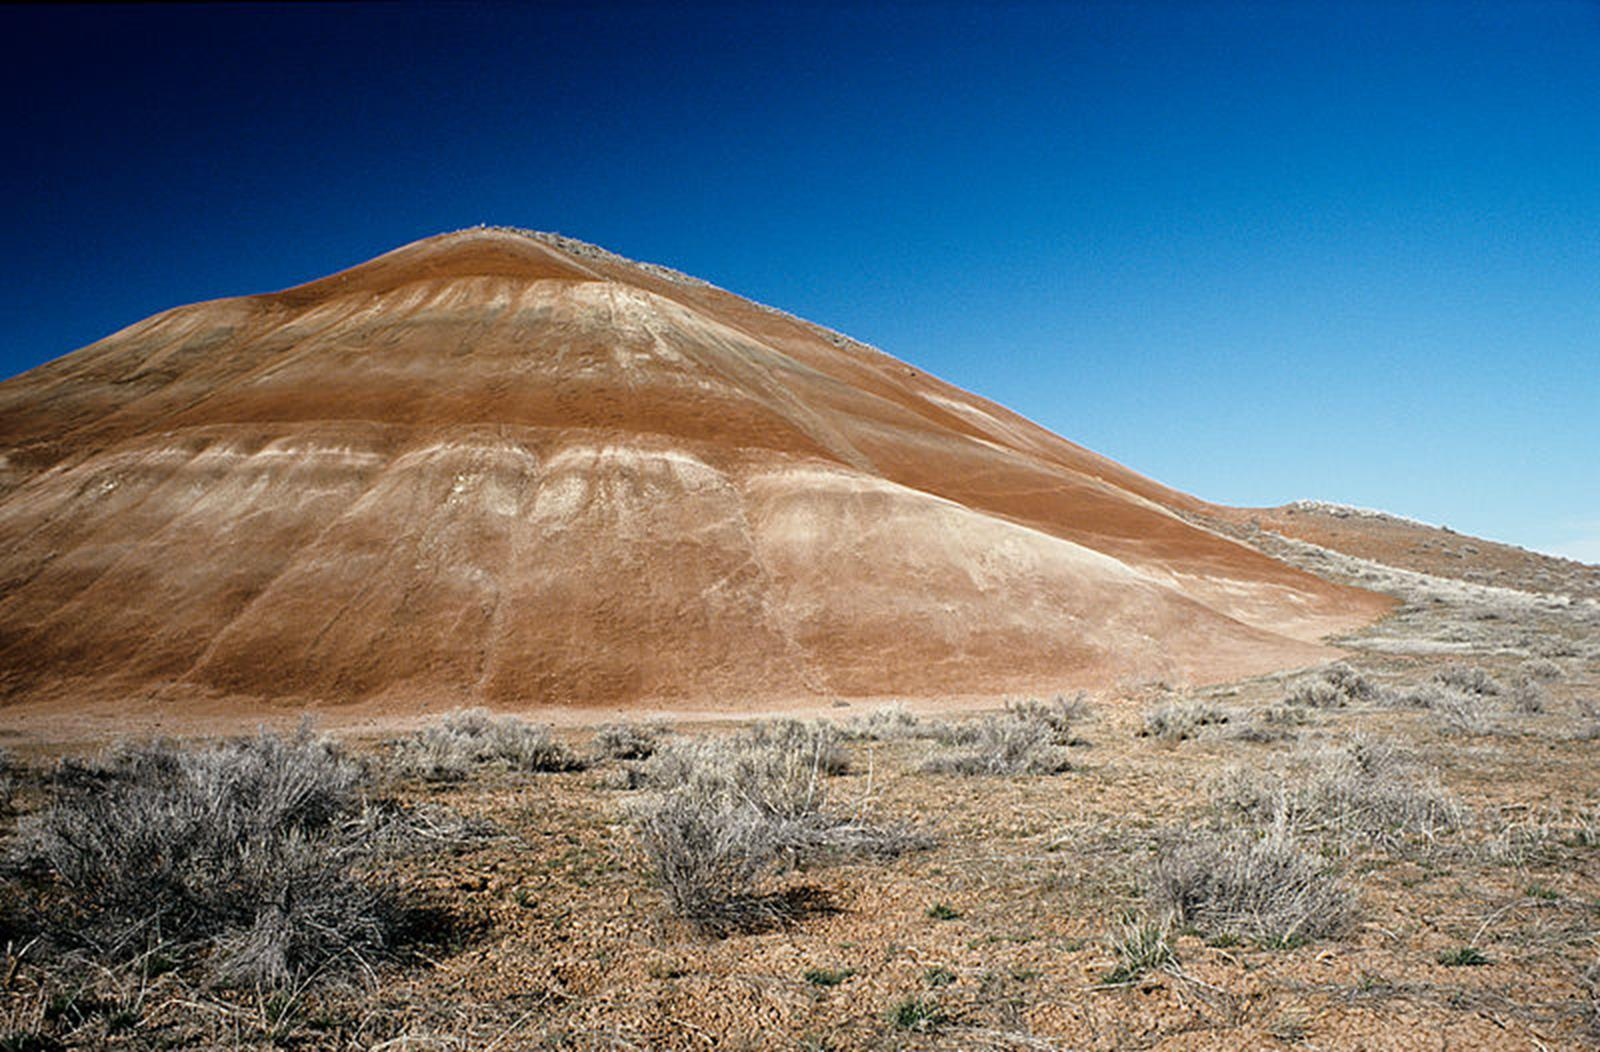 Central Oregon Painted Hills. Credit: CopyrightFreePhotos.HQ101.com